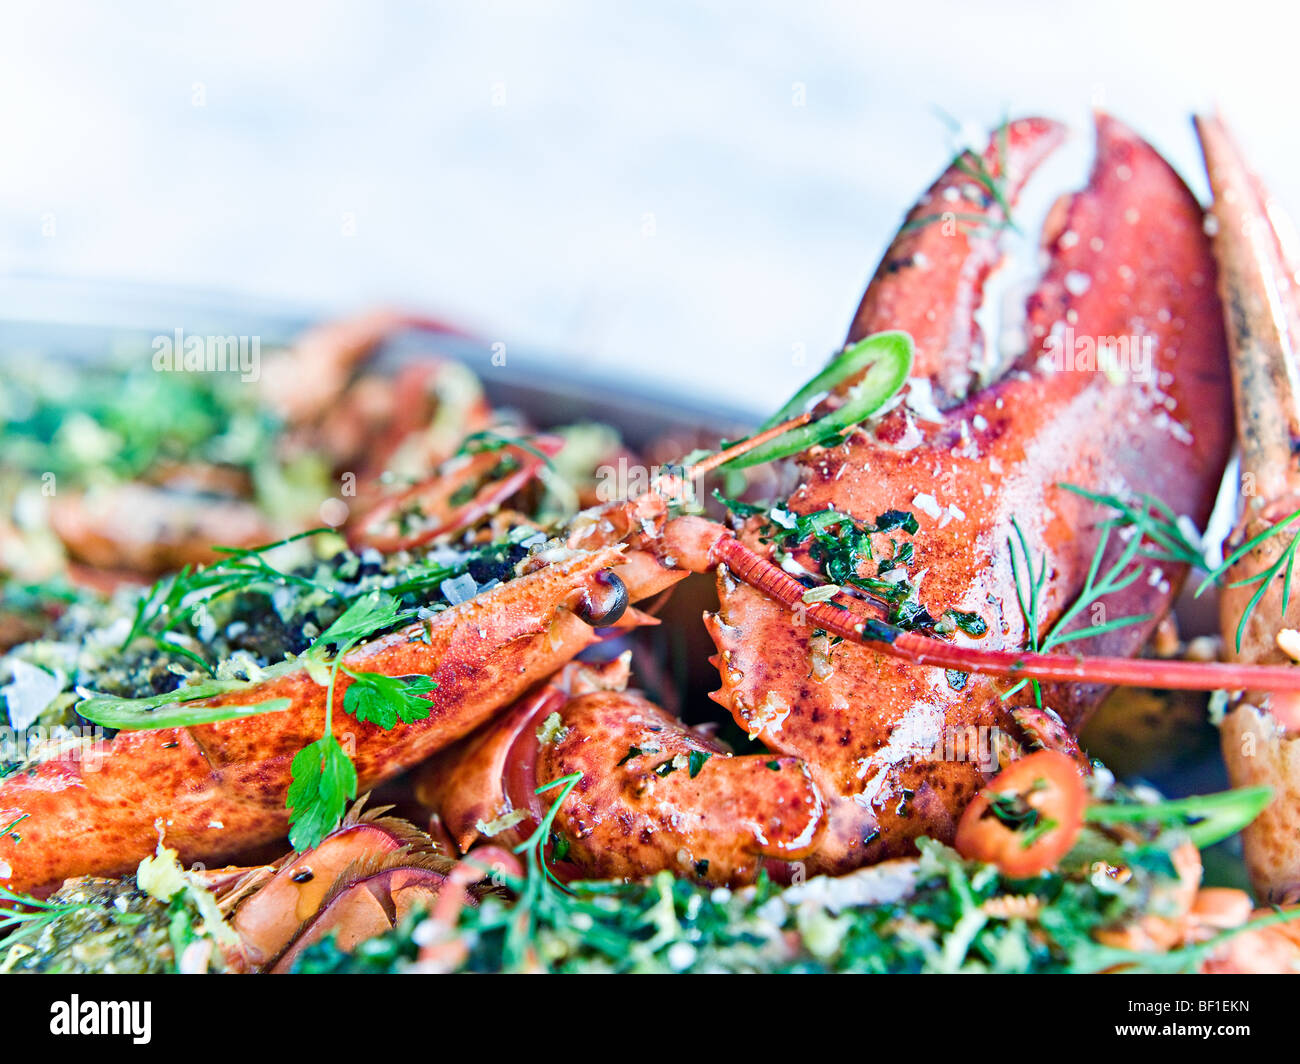 Homard préparé, close-up, en Suède. Photo Stock